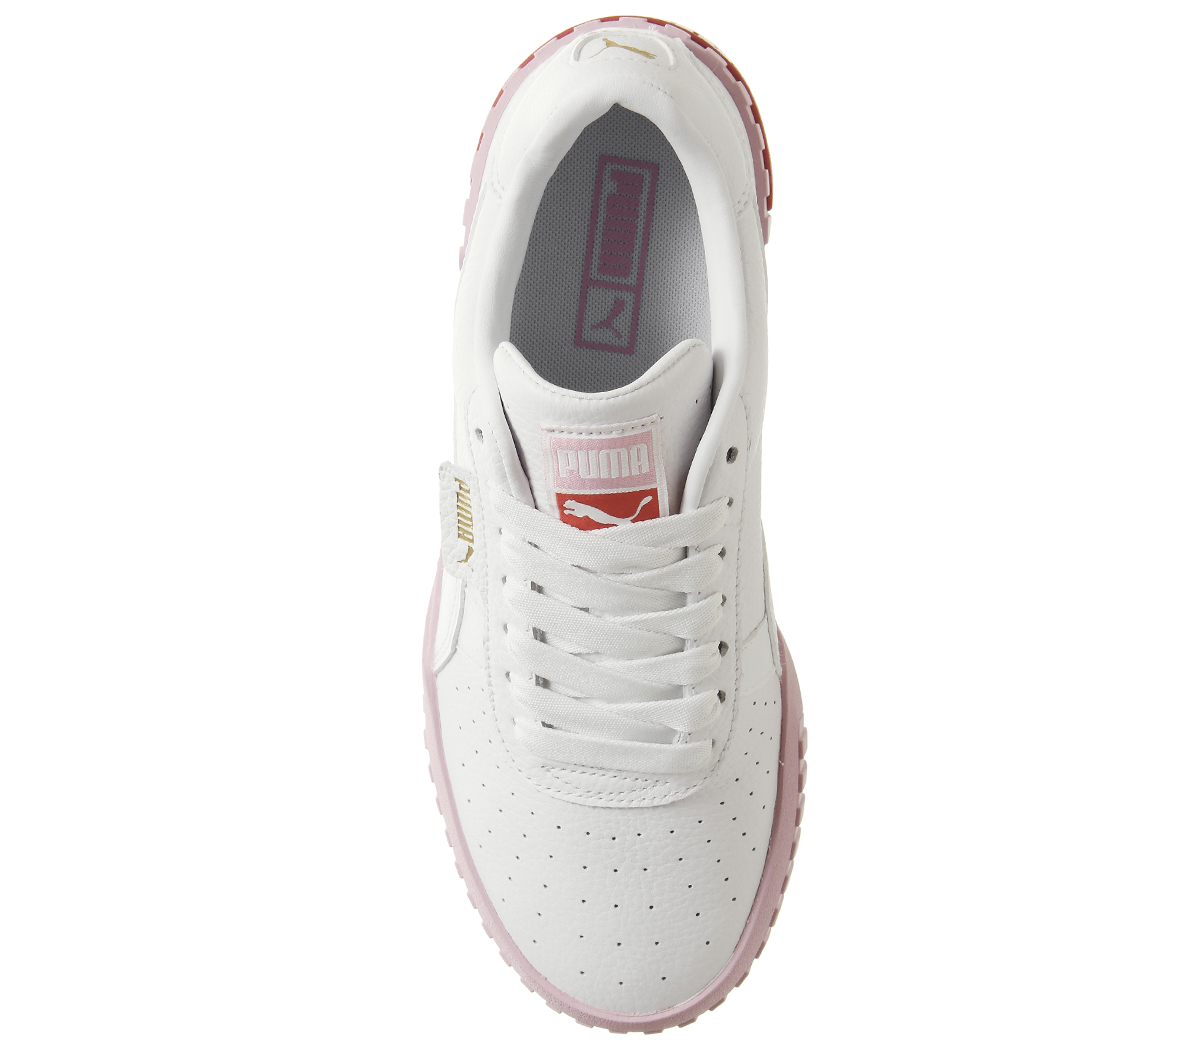 Details about Womens Puma Cali Trainers Puma White Pink Trainers Shoes 9541adcc7